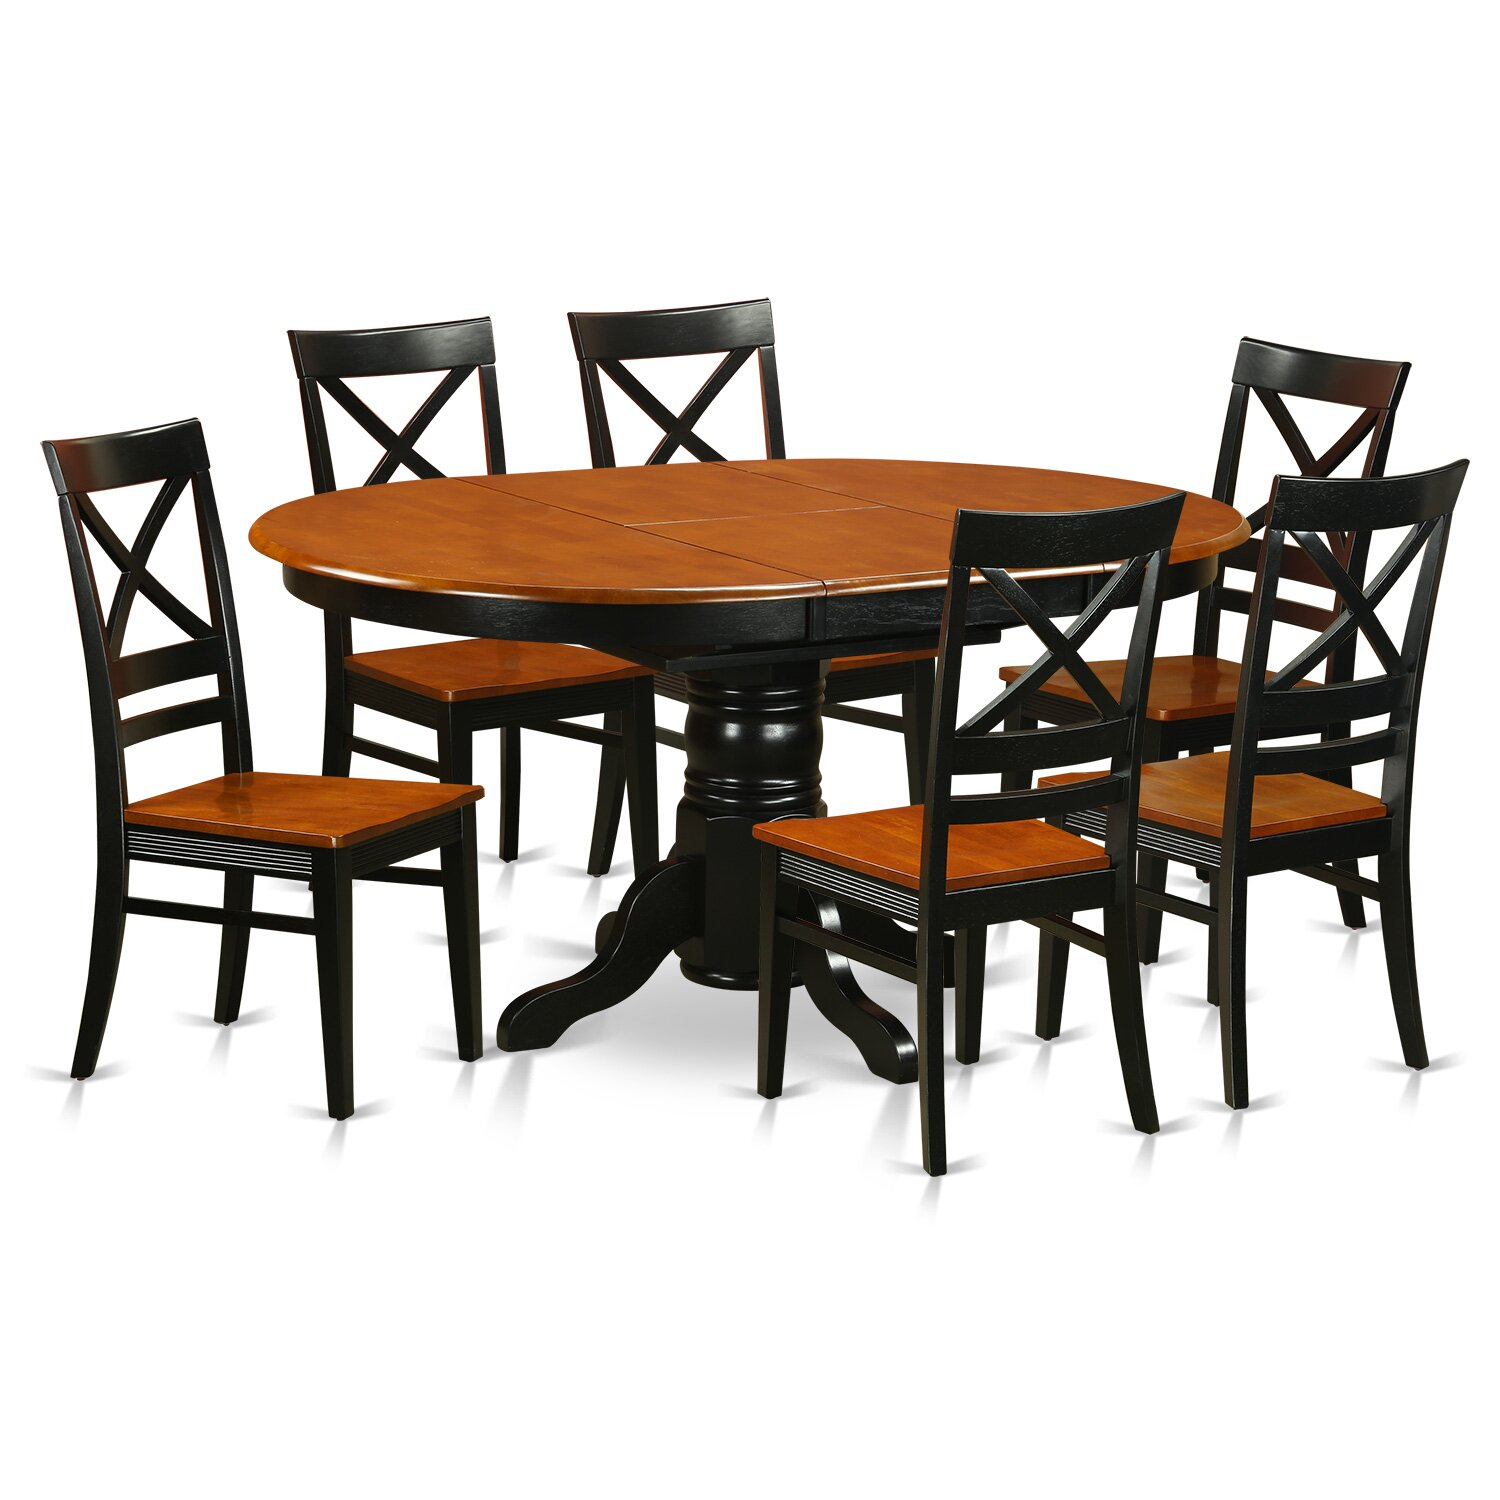 Wooden importers avon 7 piece dining set wayfair for Wood dining room furniture